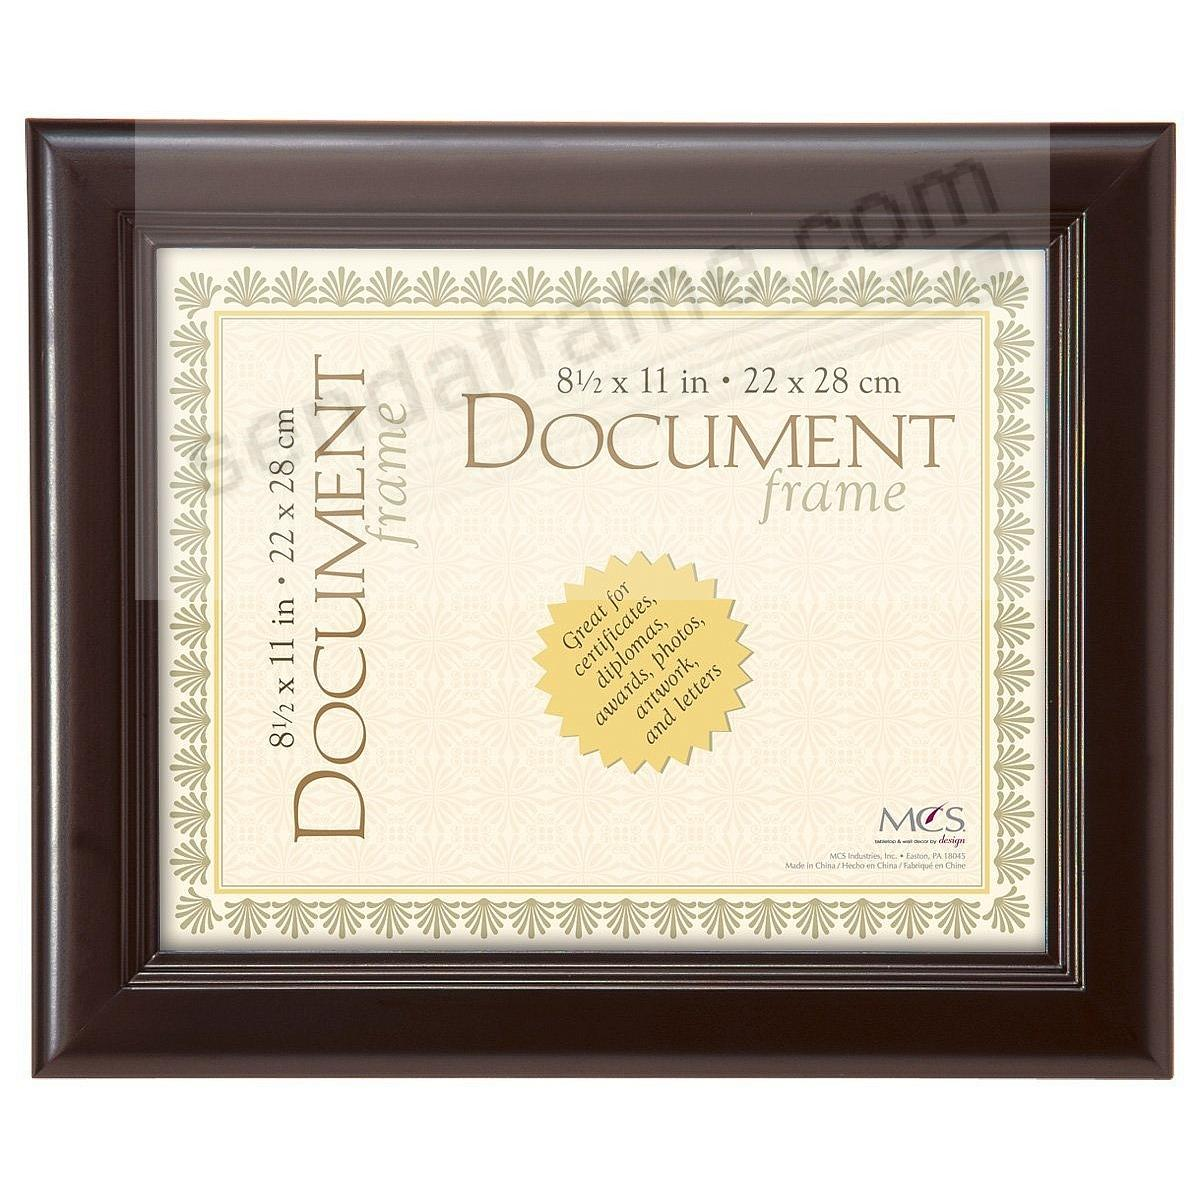 STEP Walnut-finish Pine Wood Certificate frame from MCS®